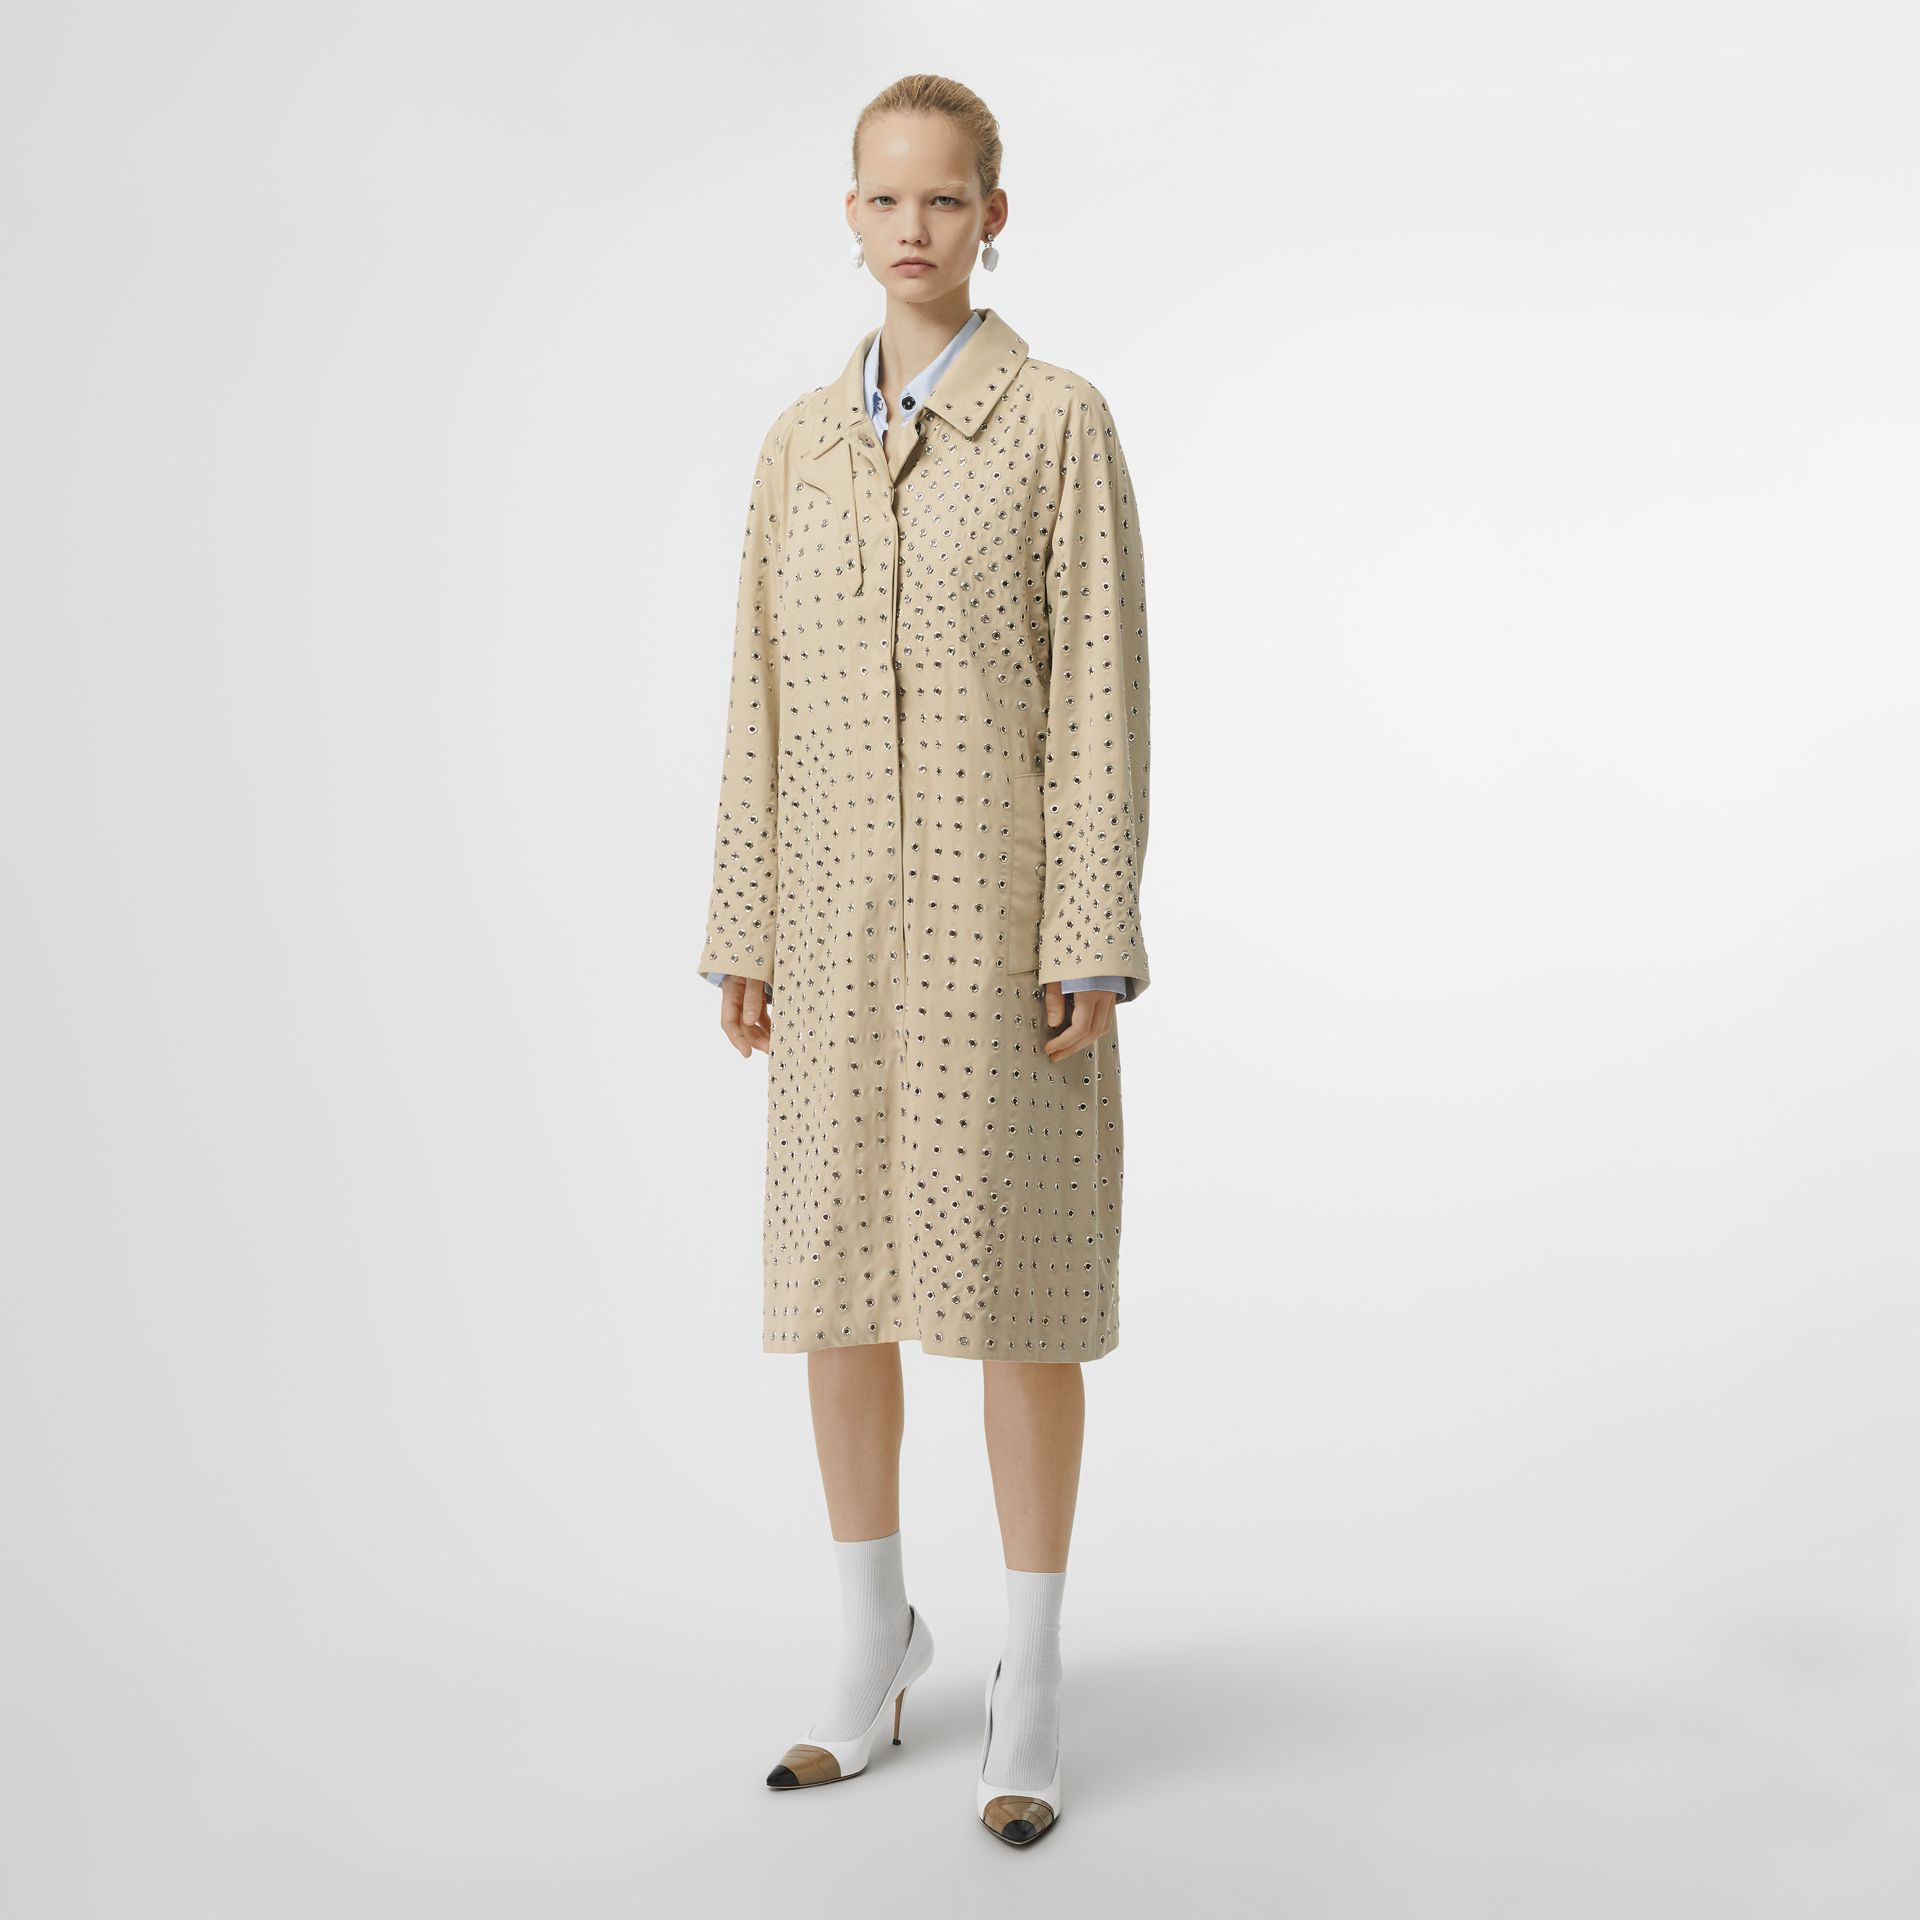 Eyelet Detail Cotton Car Coat in Light Beige - Women | Burberry Canada - gallery image 5